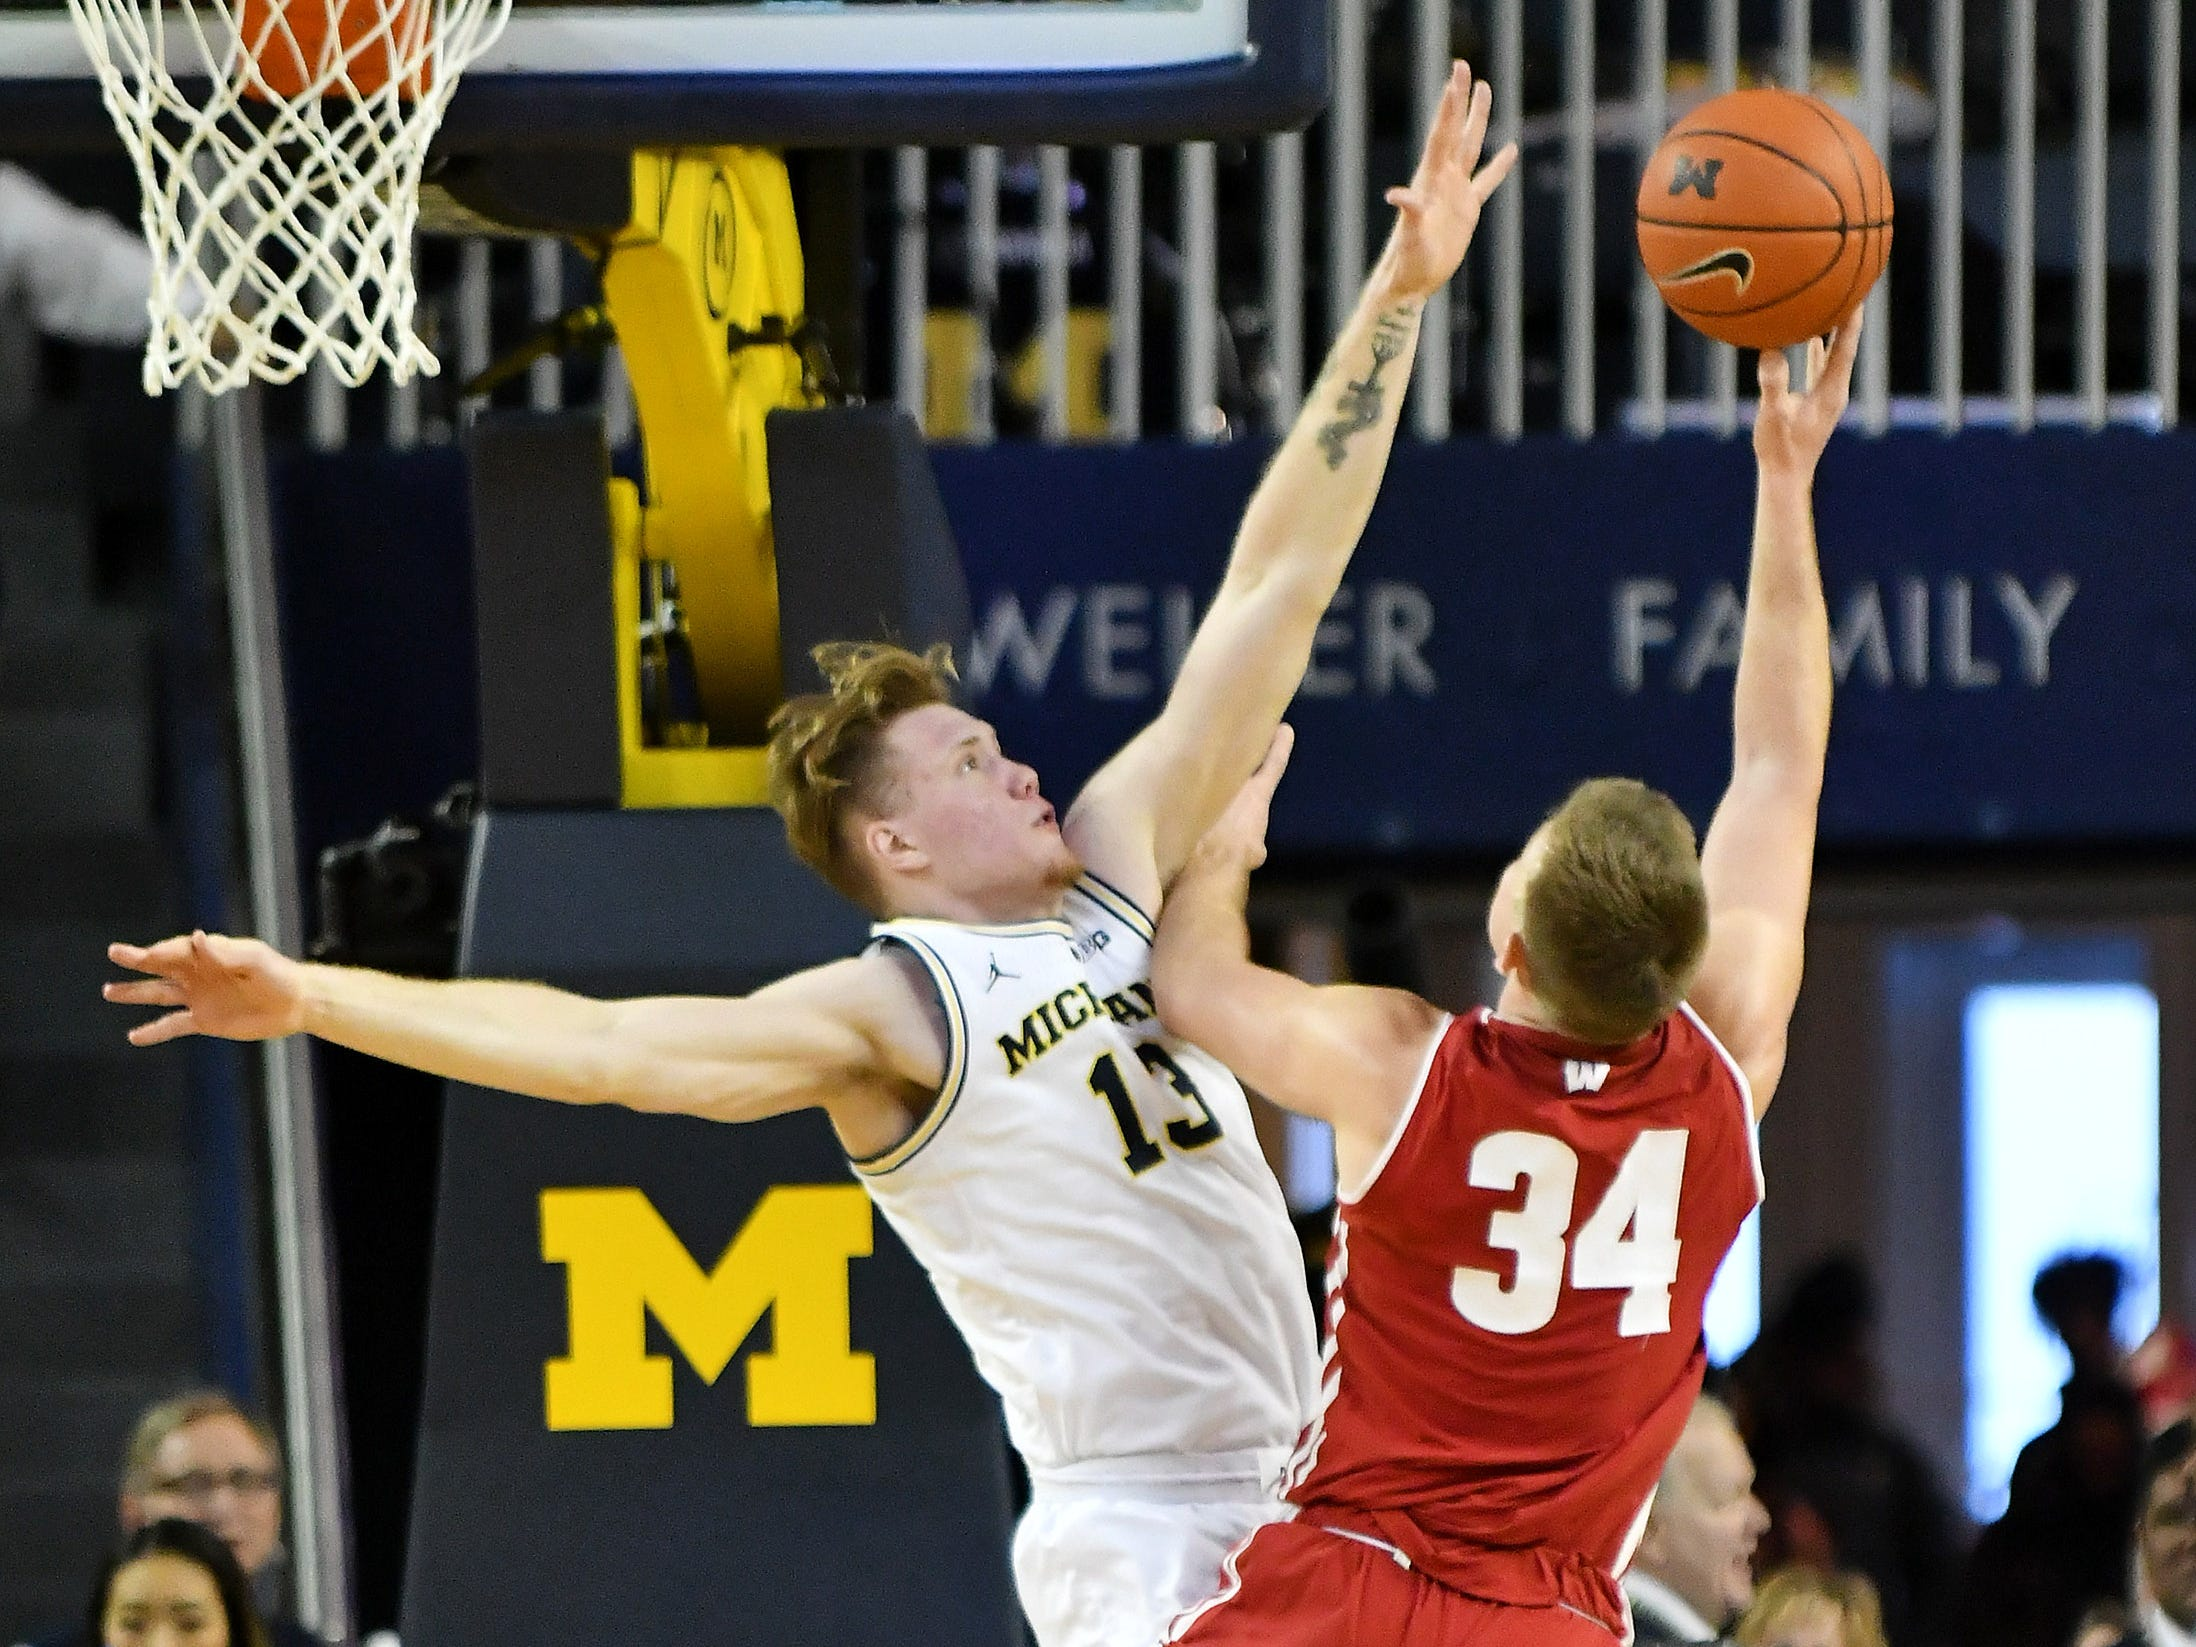 Michigan forward Ignas Brazdeikis (13) defends a shot by Wisconsin guard Brad Davison (34) in the second half.